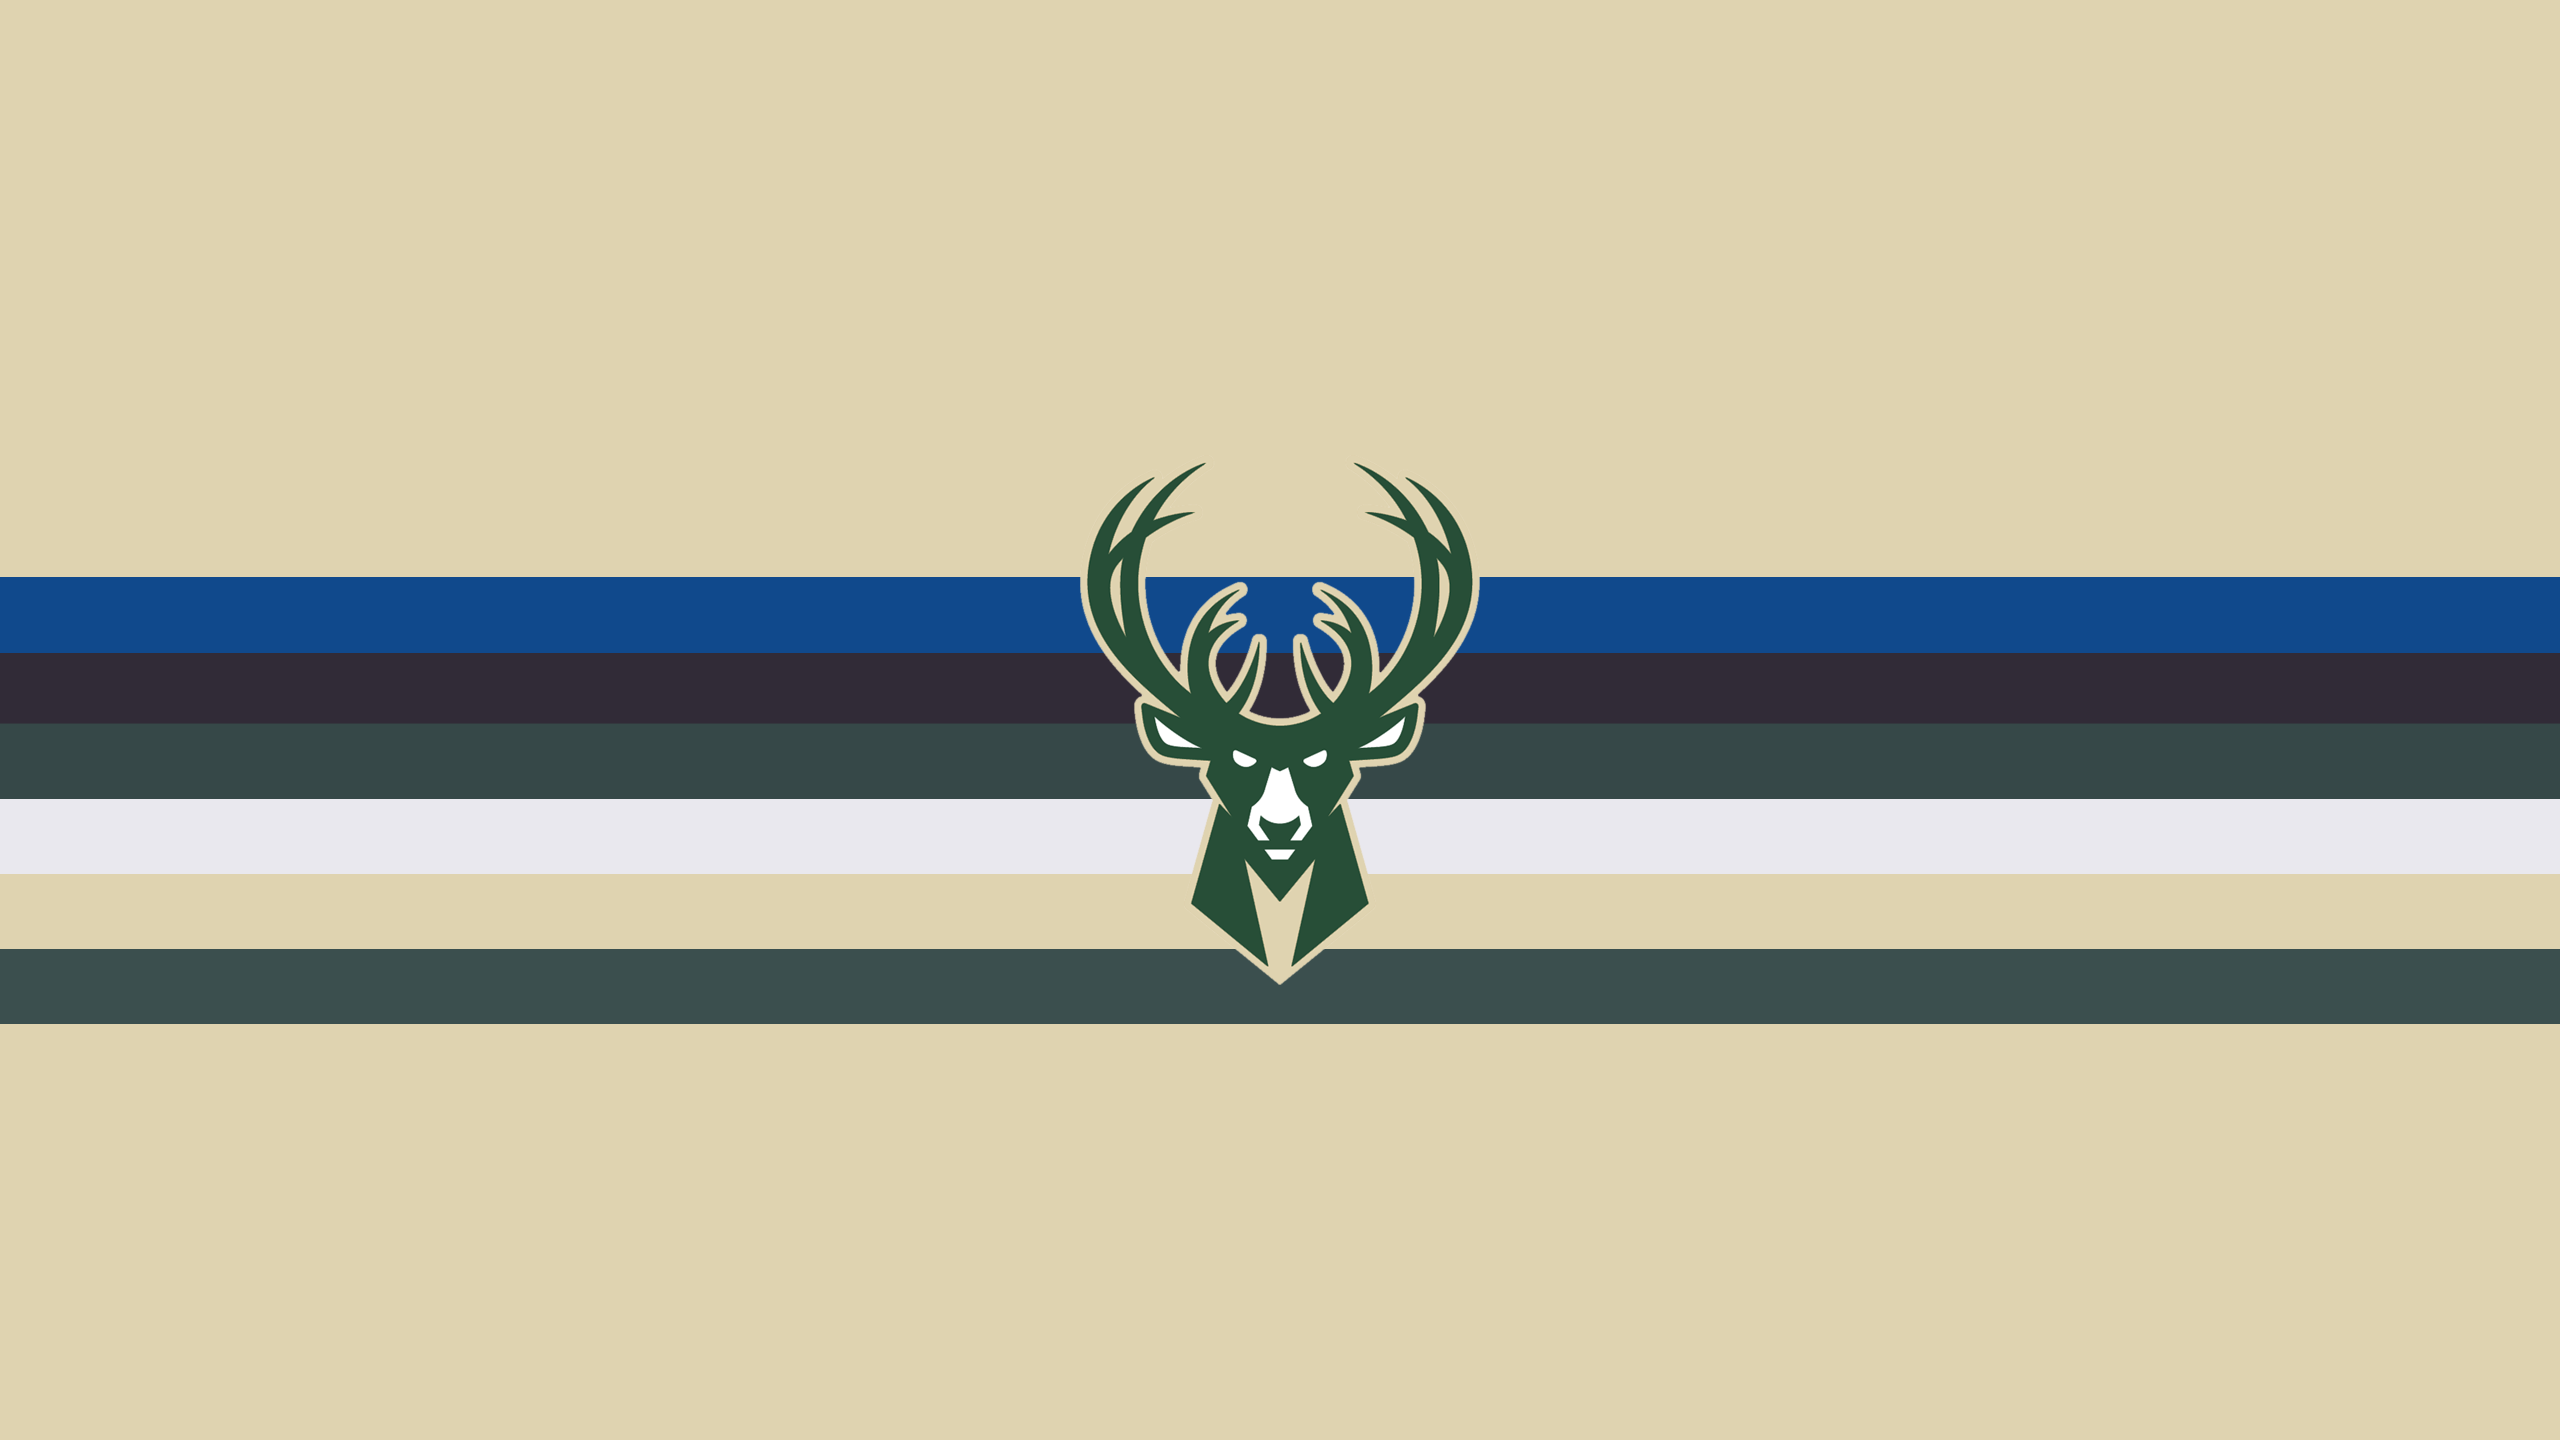 Milwaukee Bucks (2017 City Edition)